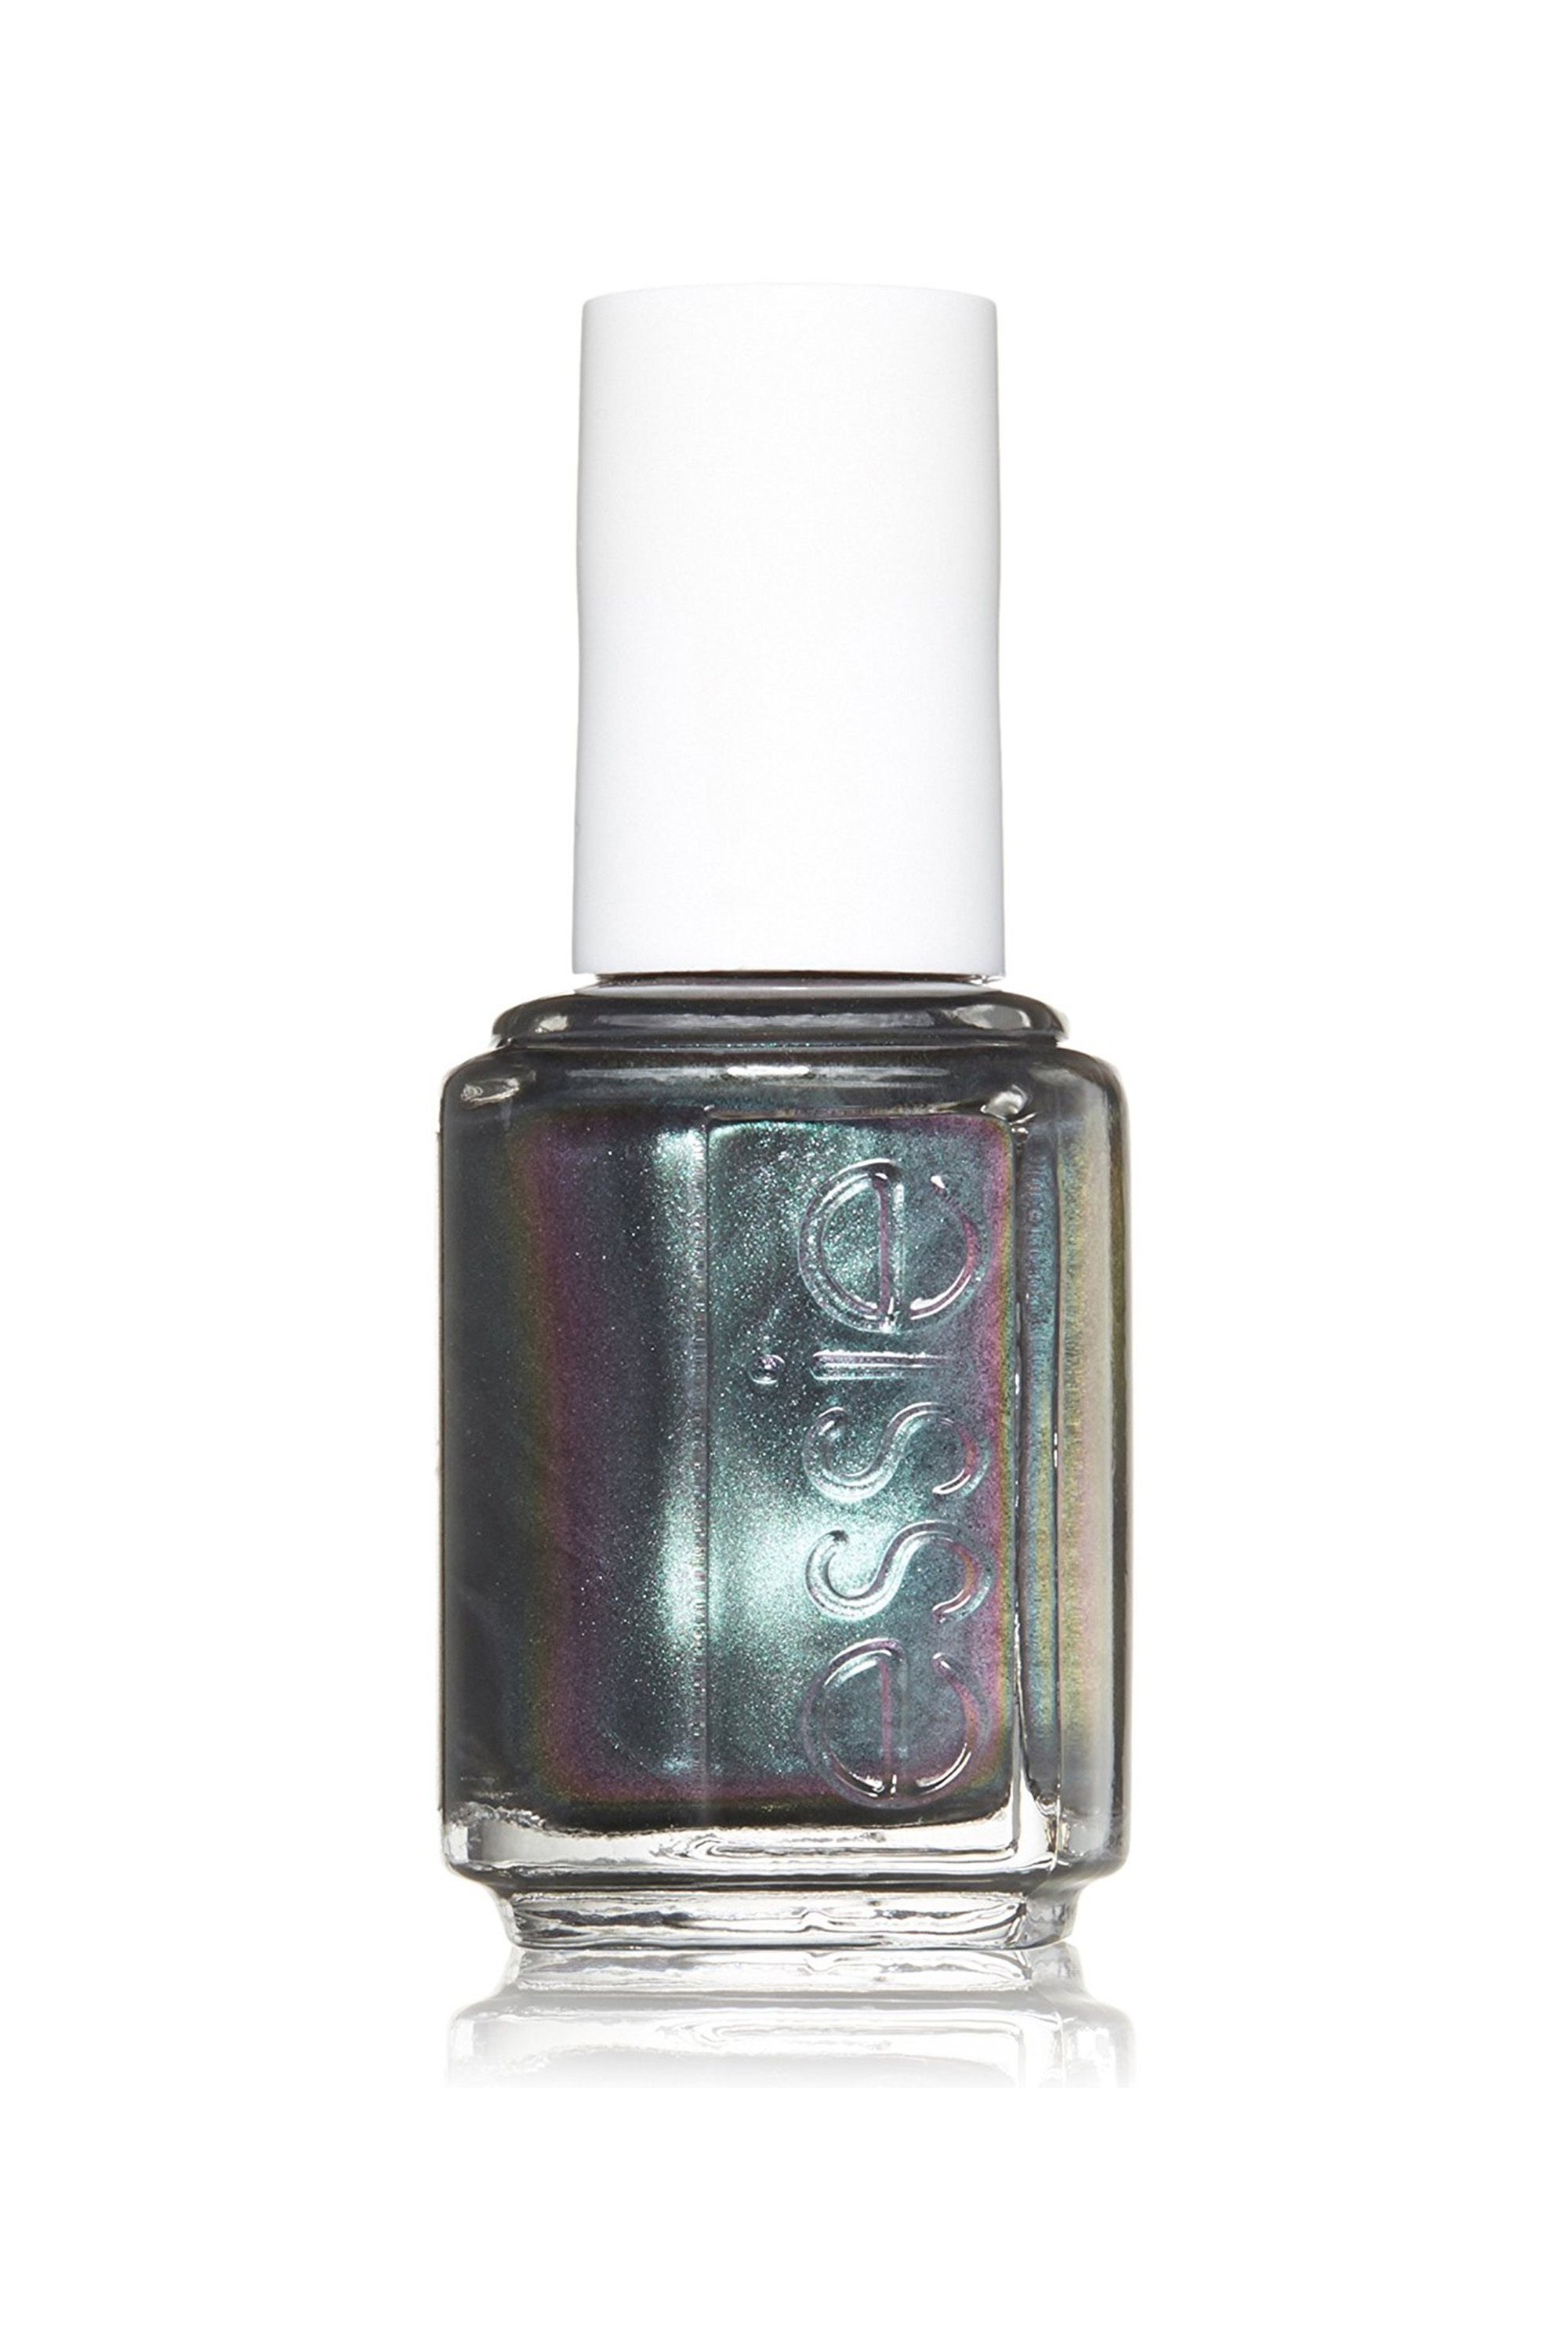 "<p>Essie Nail Color in For The Twill of It, $9; <a href=""https://www.amazon.com/essie-nail-polish-twill-0-46/dp/B00GXWDGCI/ref=sr_1_1_a_it?ie=UTF8&qid=1498771680&sr=8-1&keywords=essie%2Bnail%2Bpolish%2Bfor%2Bthe%2Btwill%2Bof%2Bit&th=1"" target=""_blank"" rel=""noopener noreferrer"">amazon.com</a></p>"